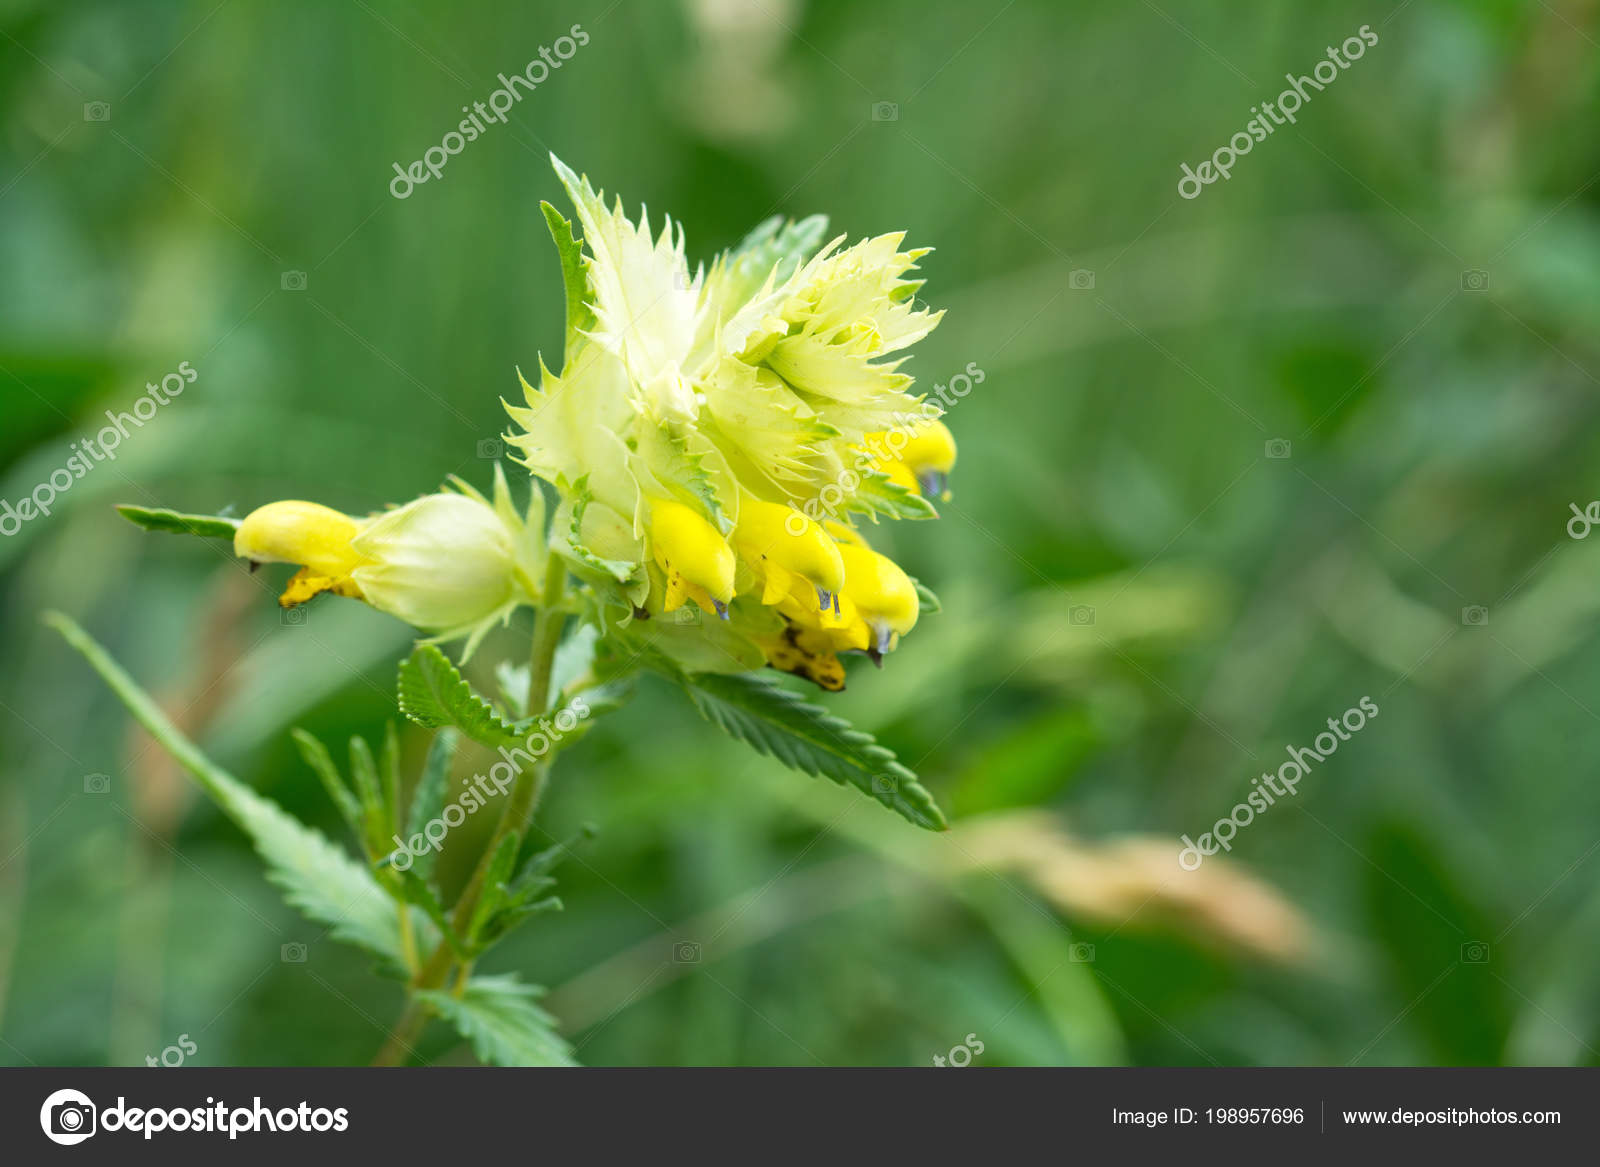 Greater yellow rattle flower blurred natural background stock greater yellow rattle flower blurred natural background stock photo mightylinksfo